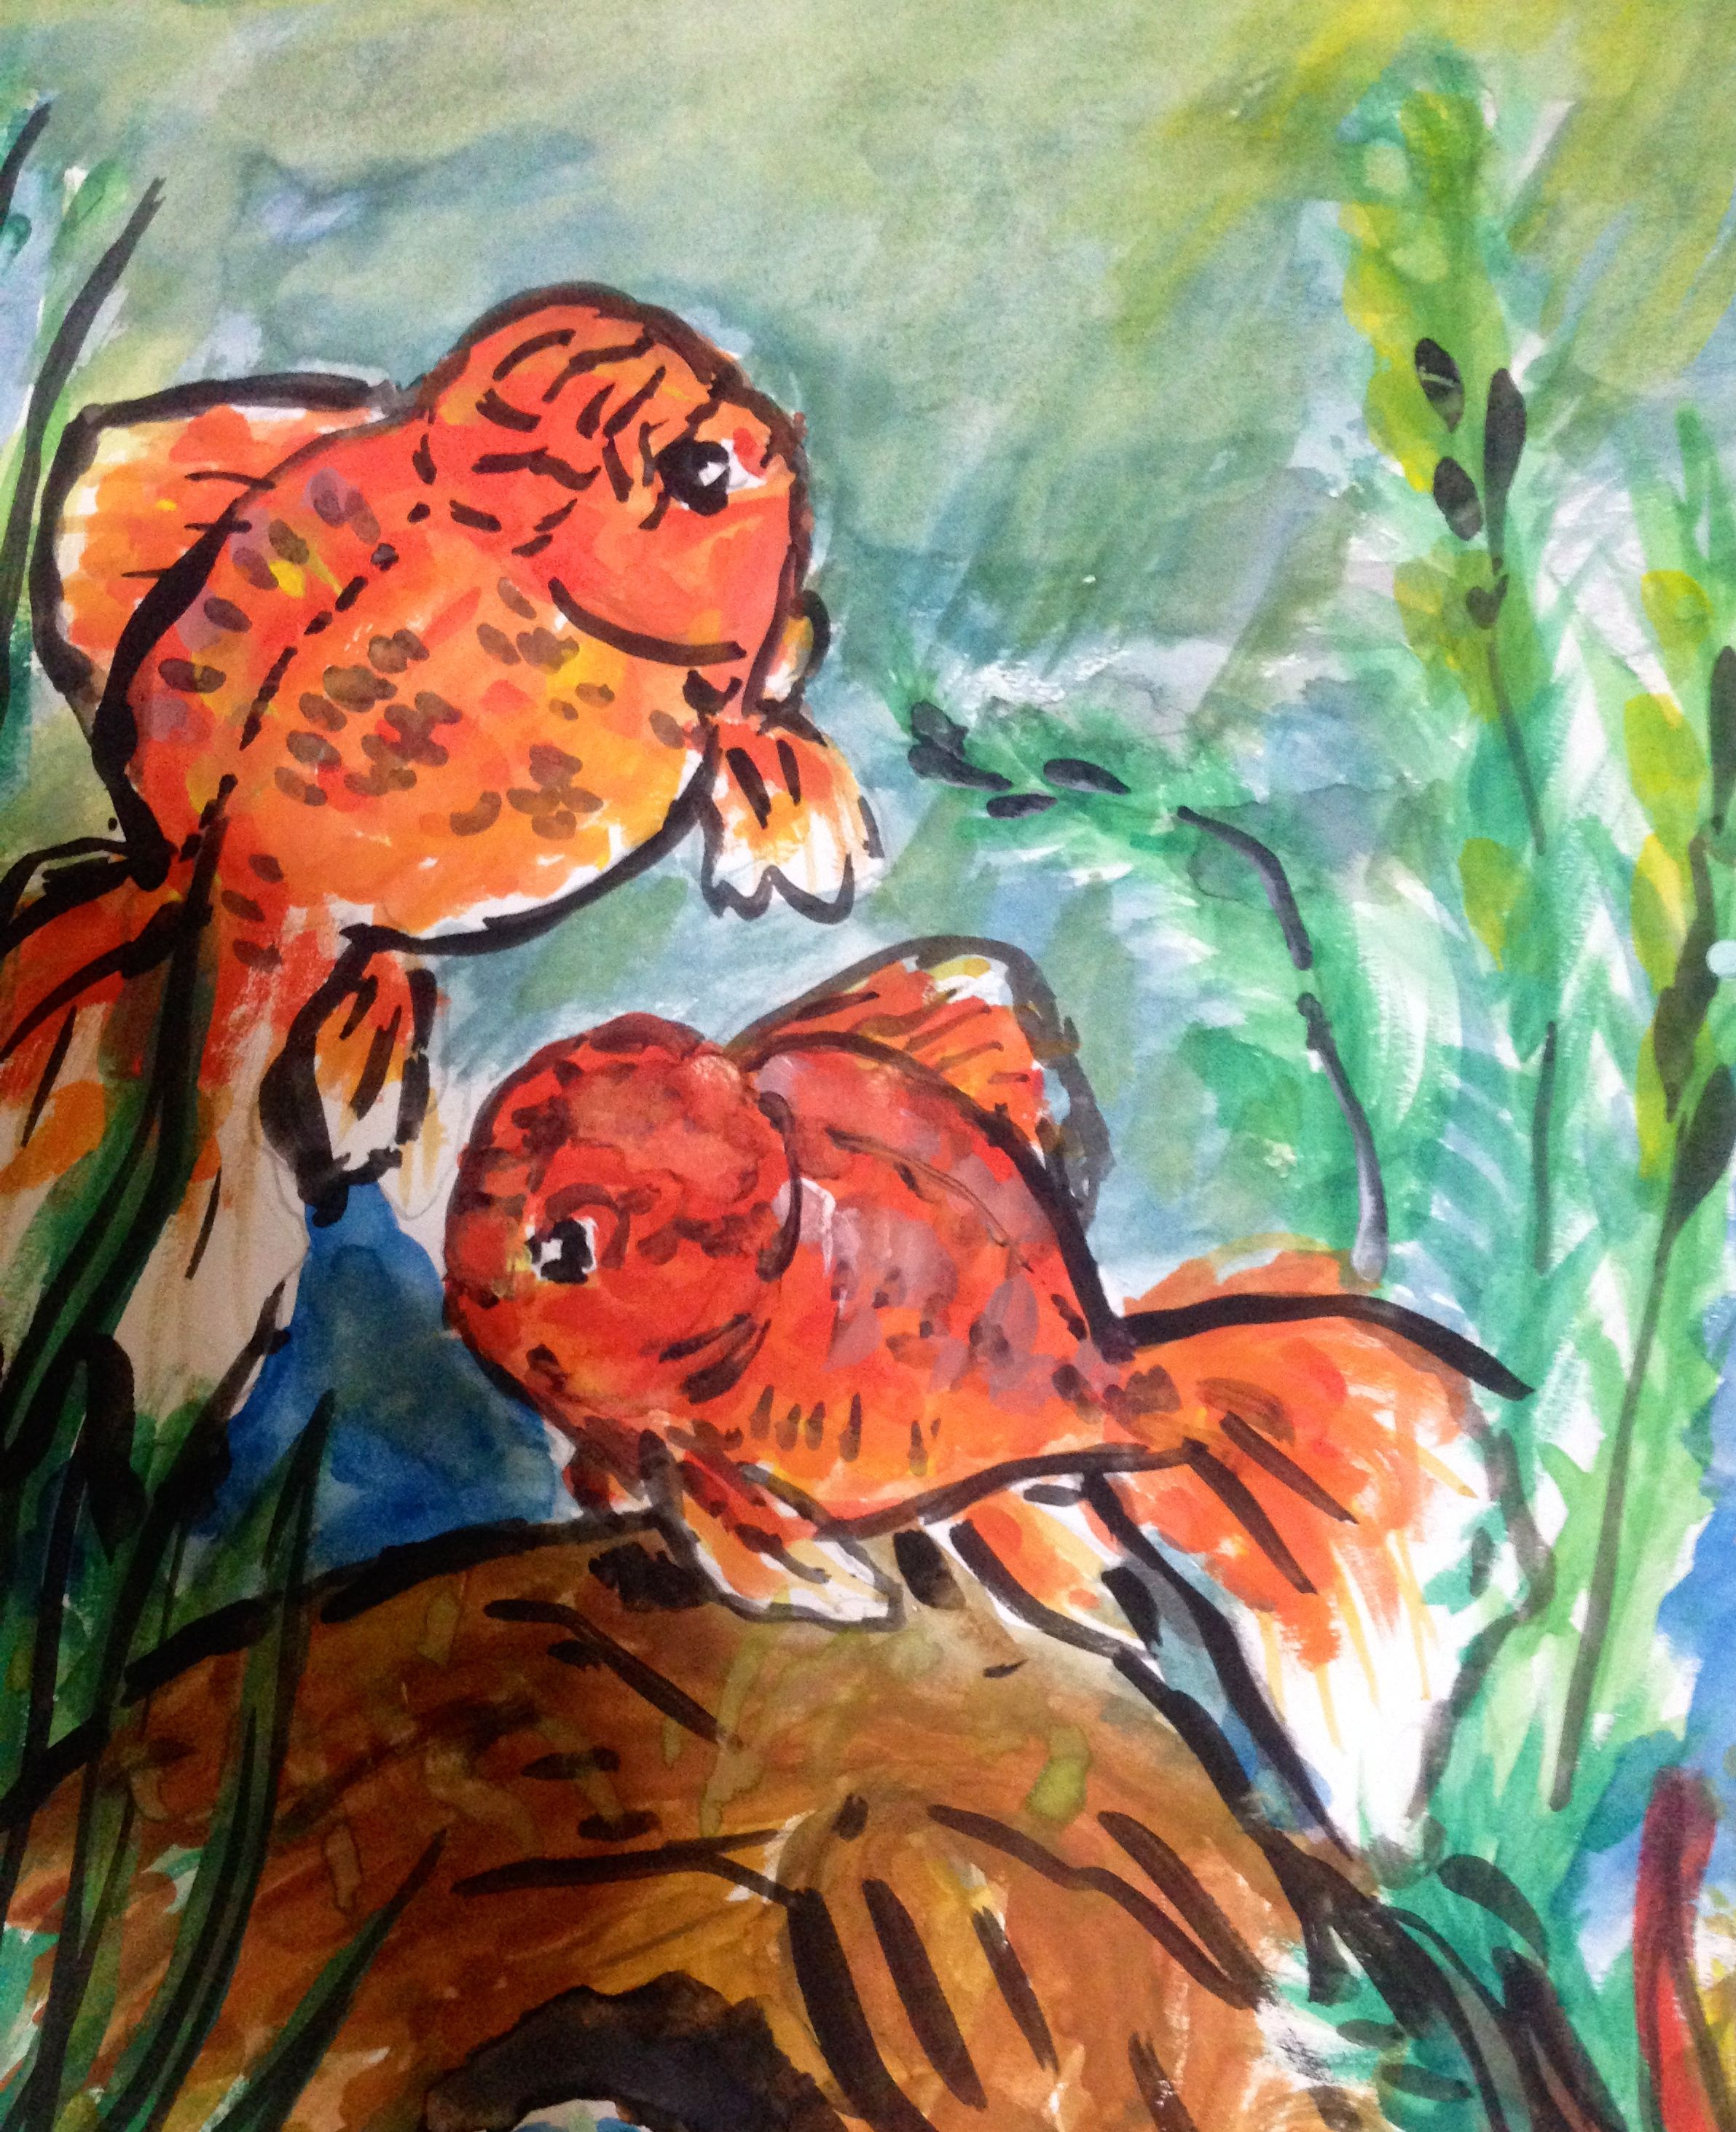 My gold fishes poster color painting | My Drawings | Pinterest ...